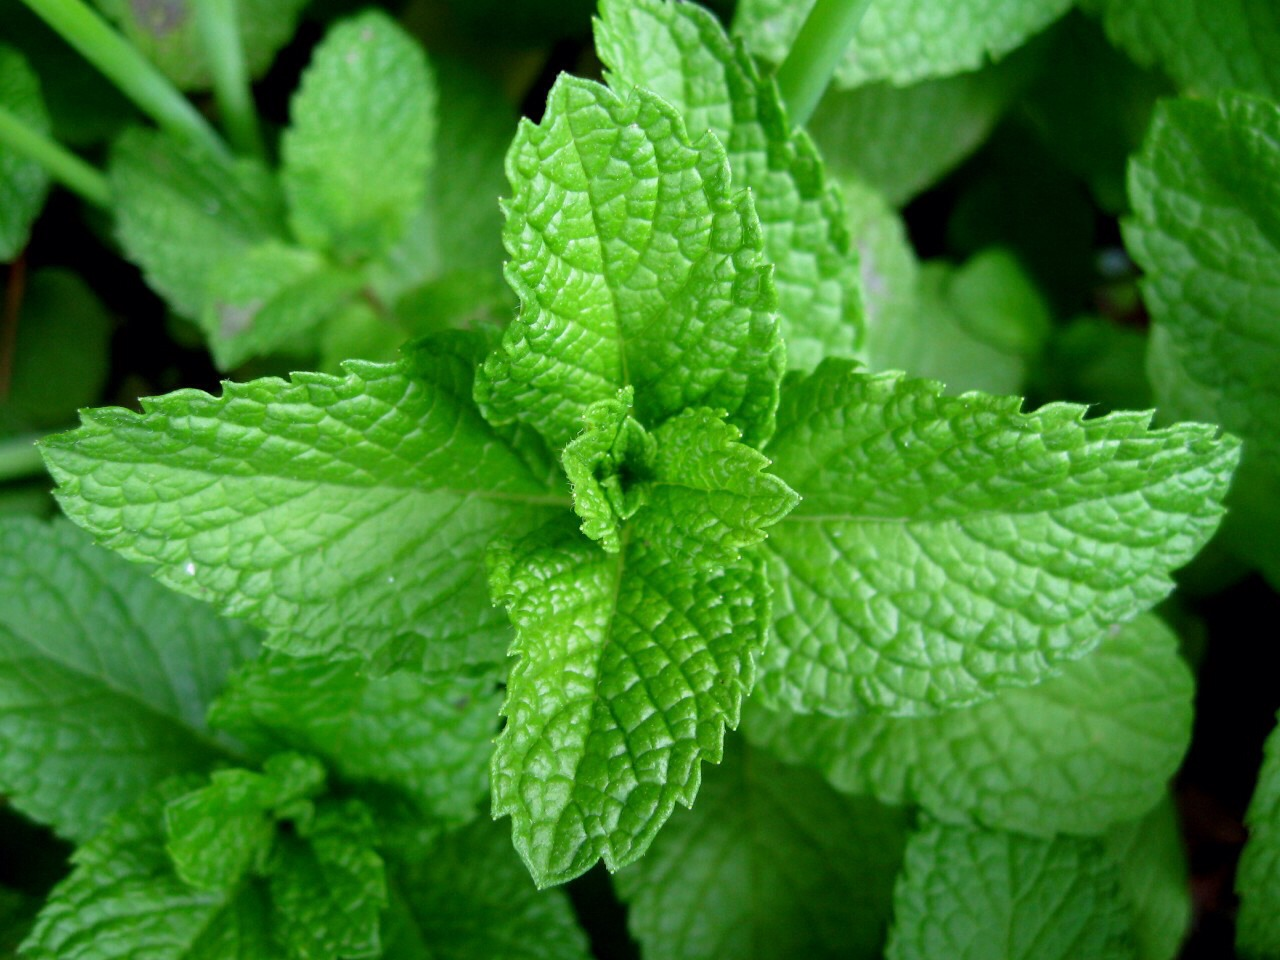 Grind up some mint leaves and place them under your eyes to help get rid of your black circles